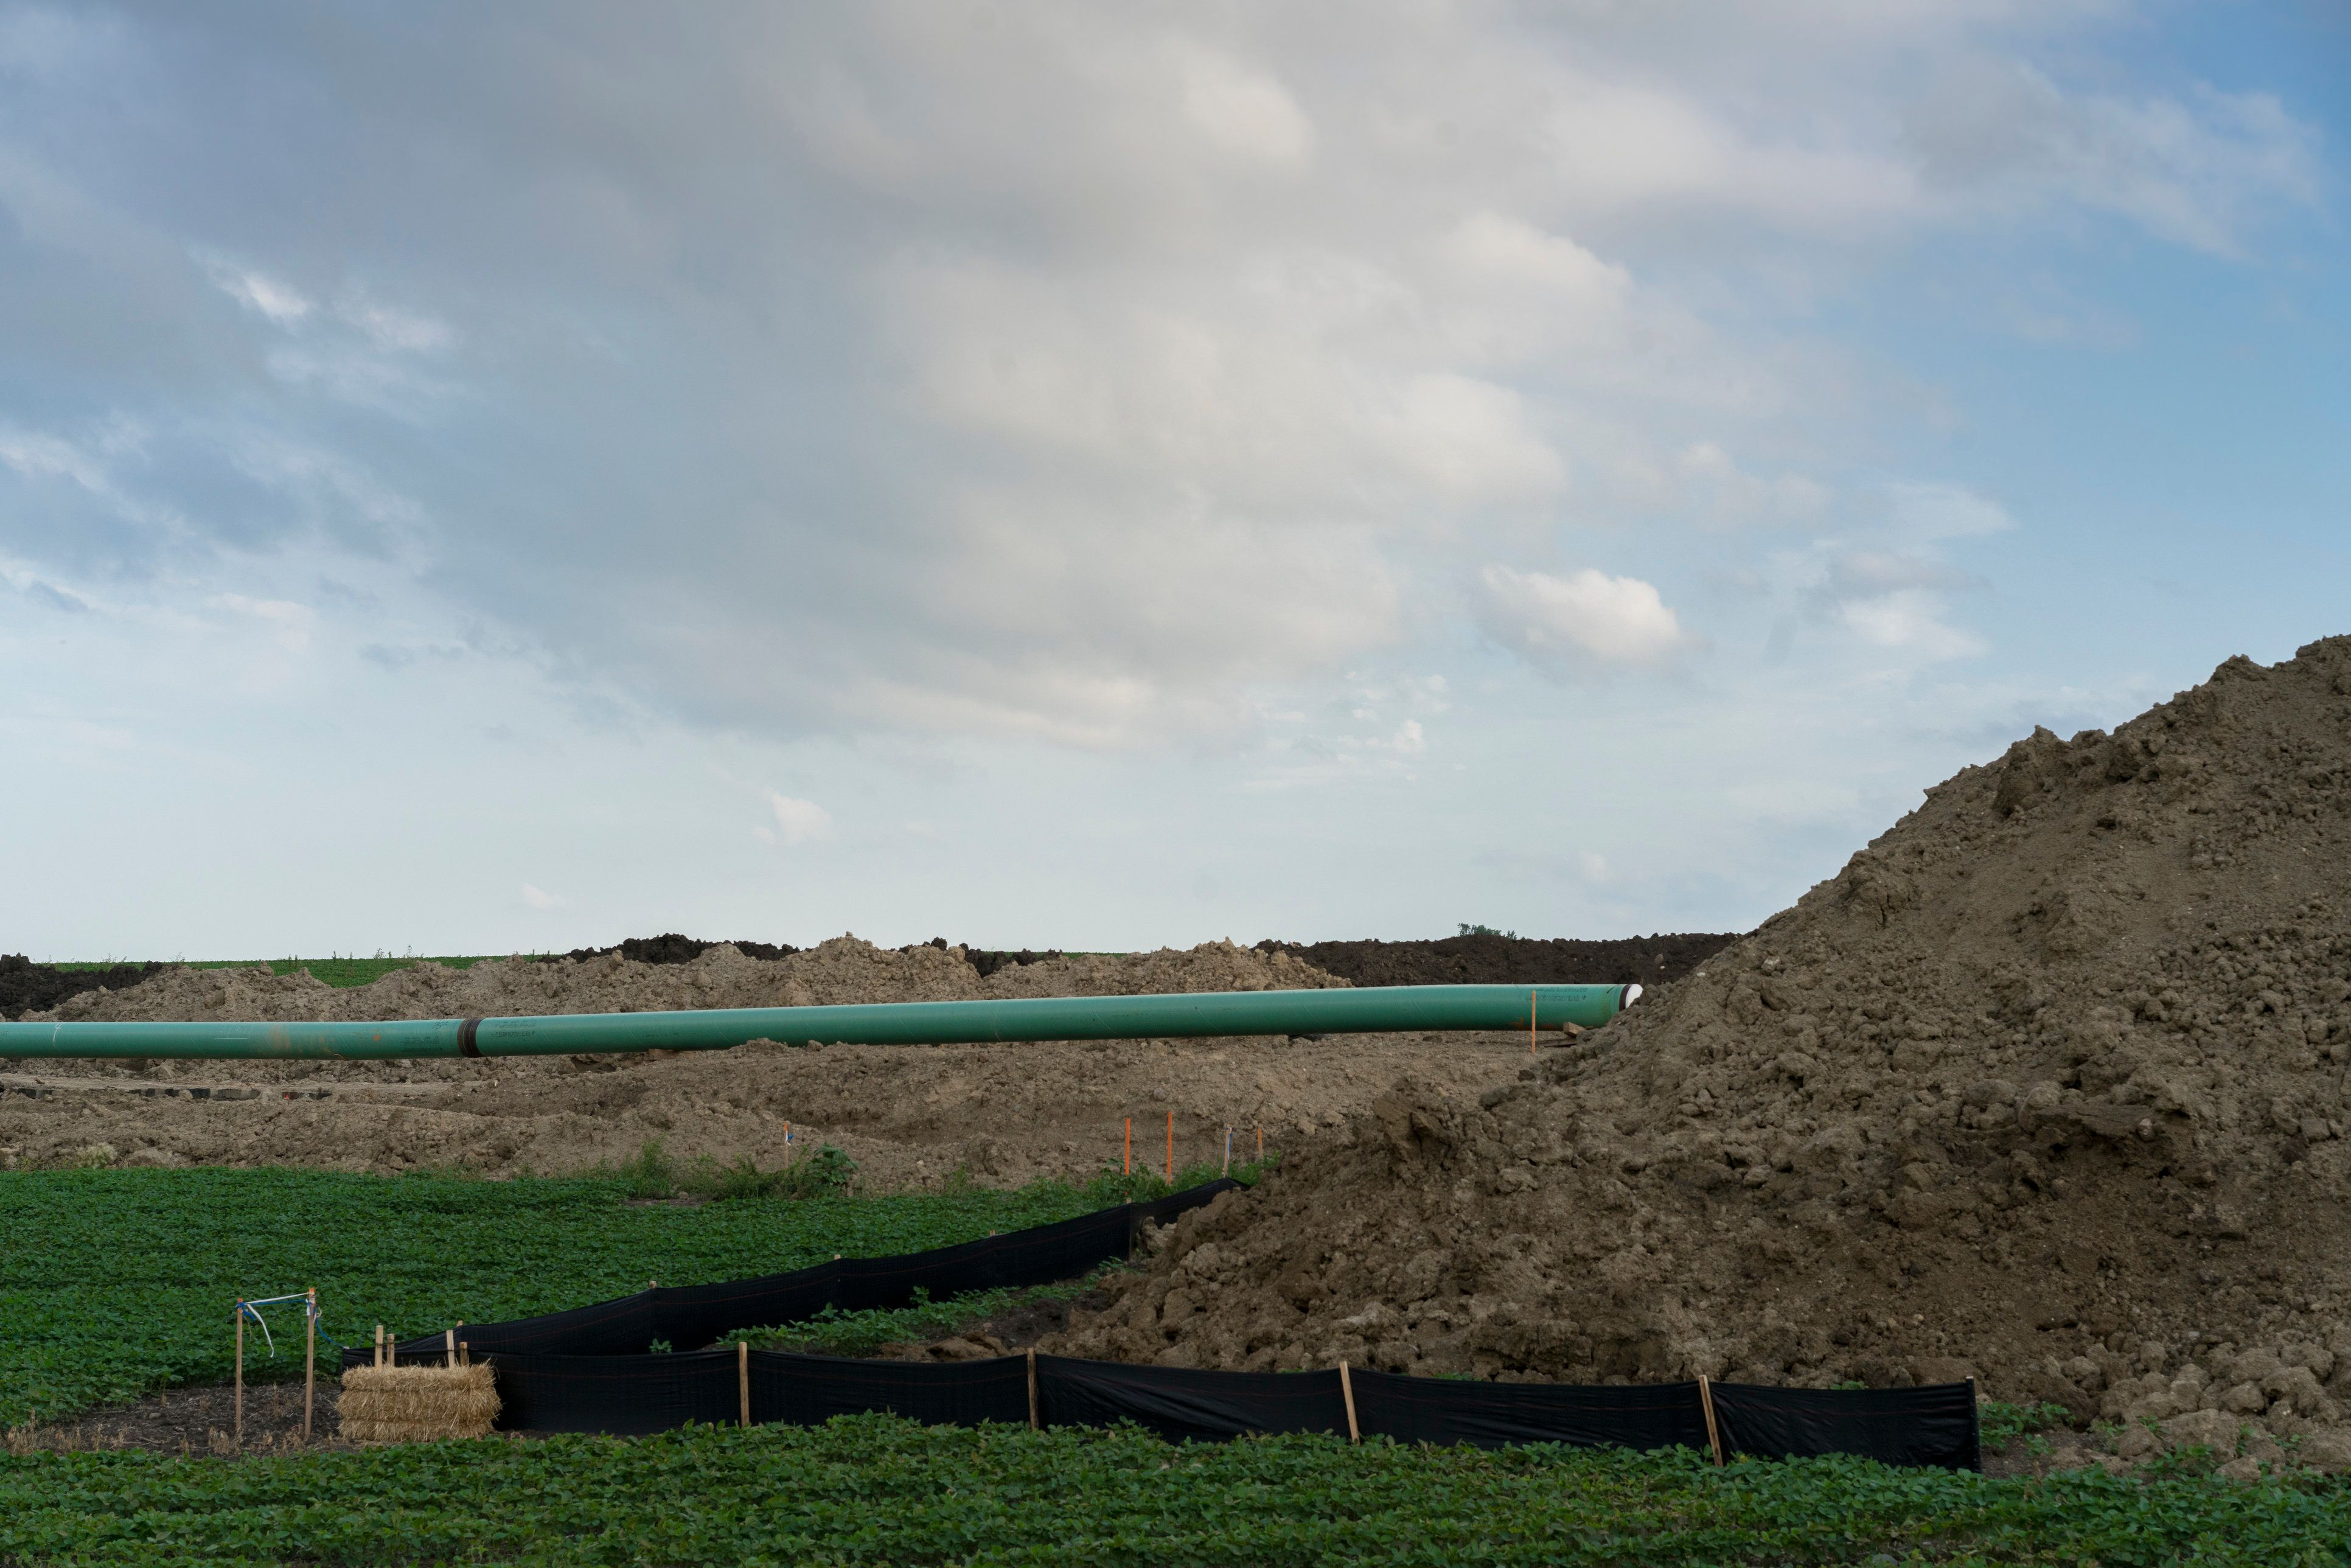 Dakota Access Pipeline being constructed through farmland near Sioux Falls, SD. The Dakota Access Pipeline Project is a new approximate 1,172-mile, 30-inch diameter pipeline that will connect the rapidly expanding Bakken and Three Forks production areas in North Dakota to Patoka, Illinois.